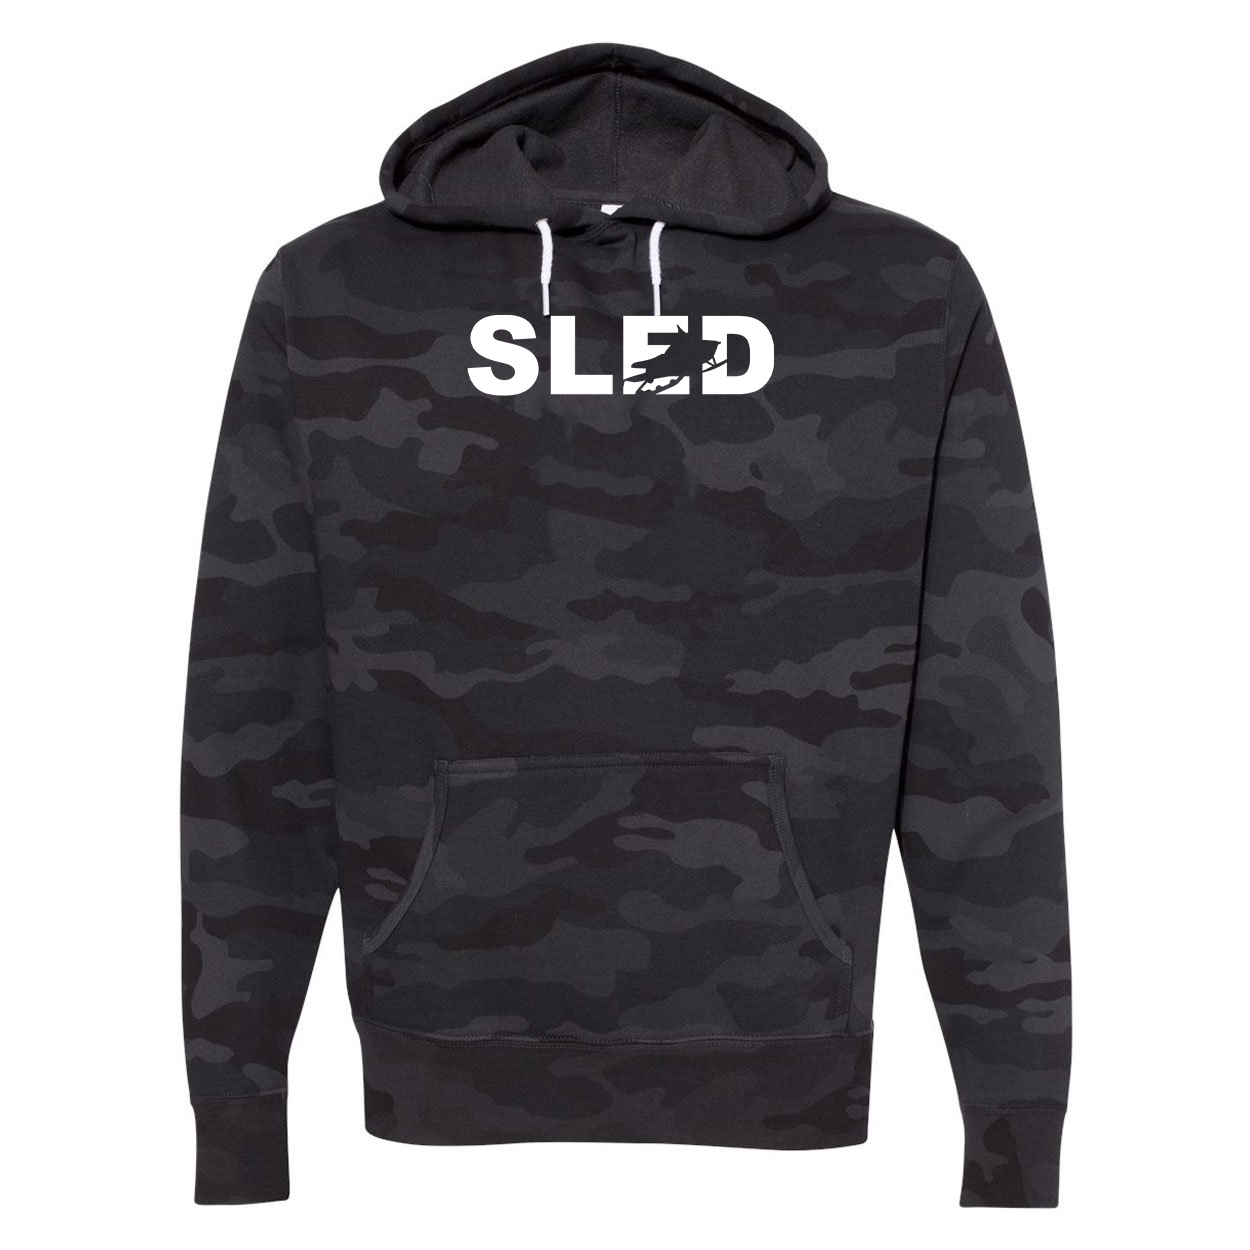 Sled Snowmobile Logo Classic Unisex Hooded Sweatshirt Black Camo (White Logo)